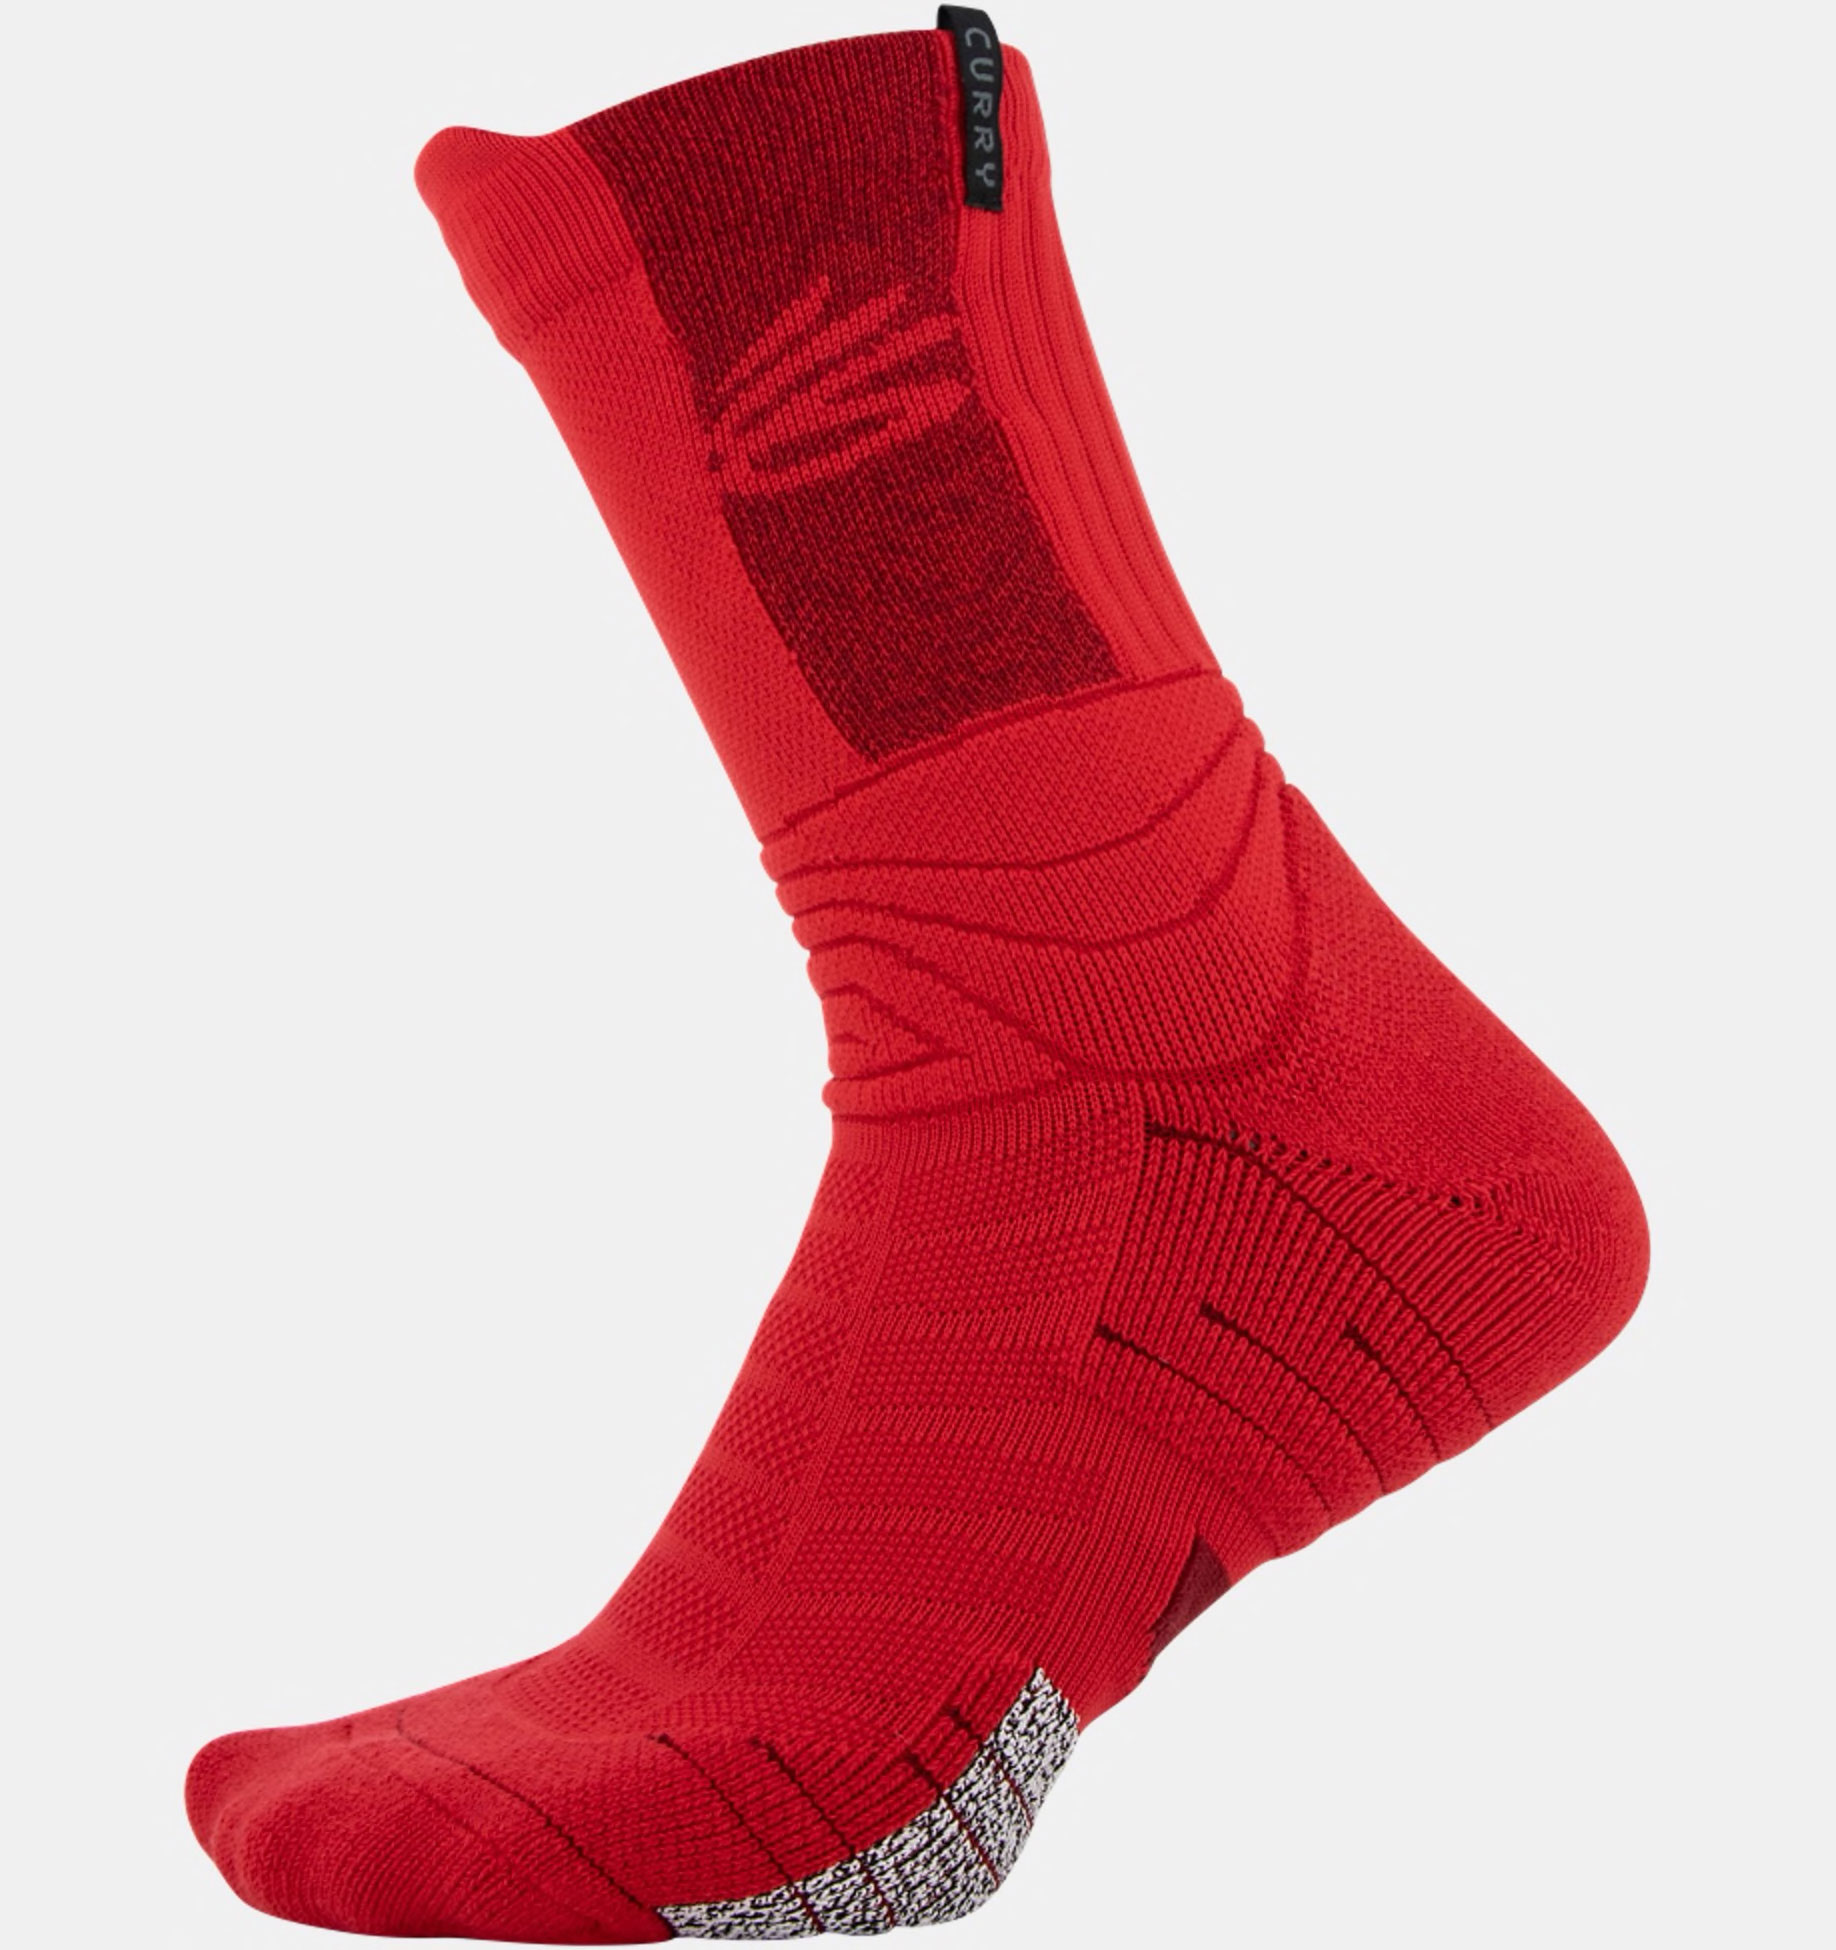 curry-8-red-socks